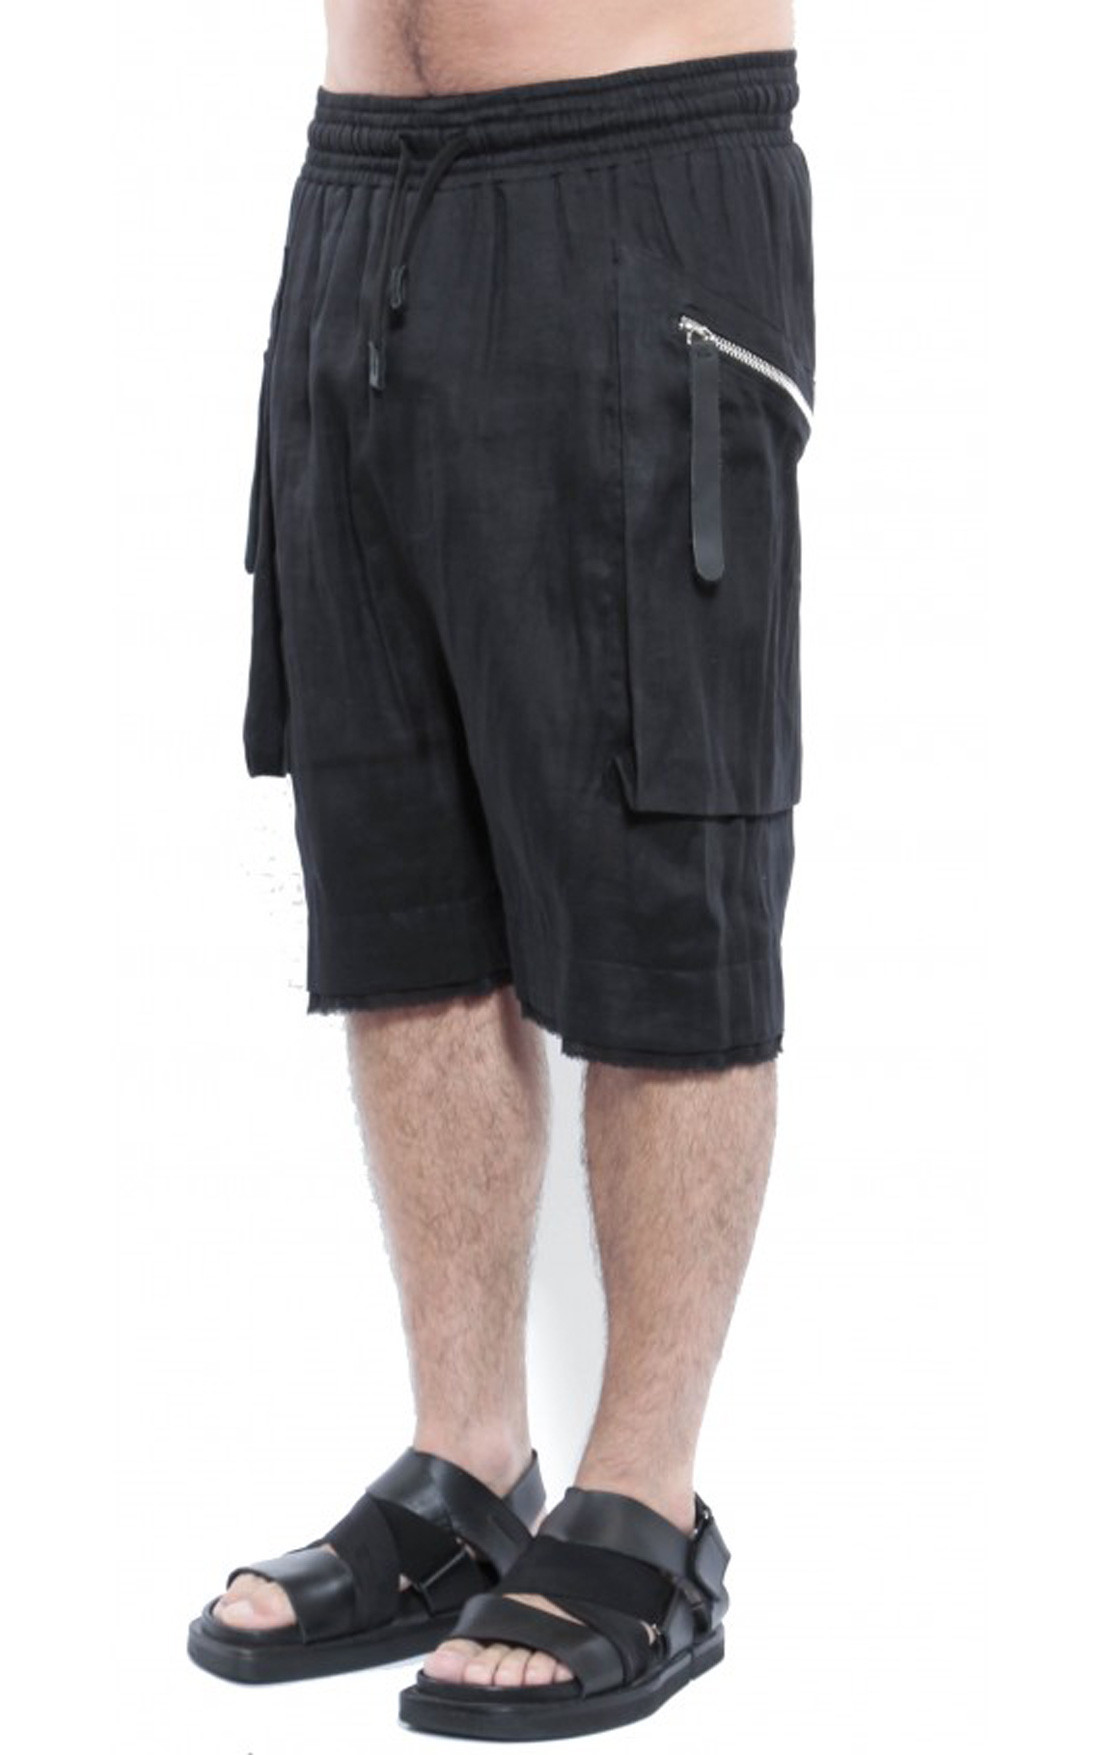 David's Road - Double Cotton Shorts with Zip (MSS18-TR10)